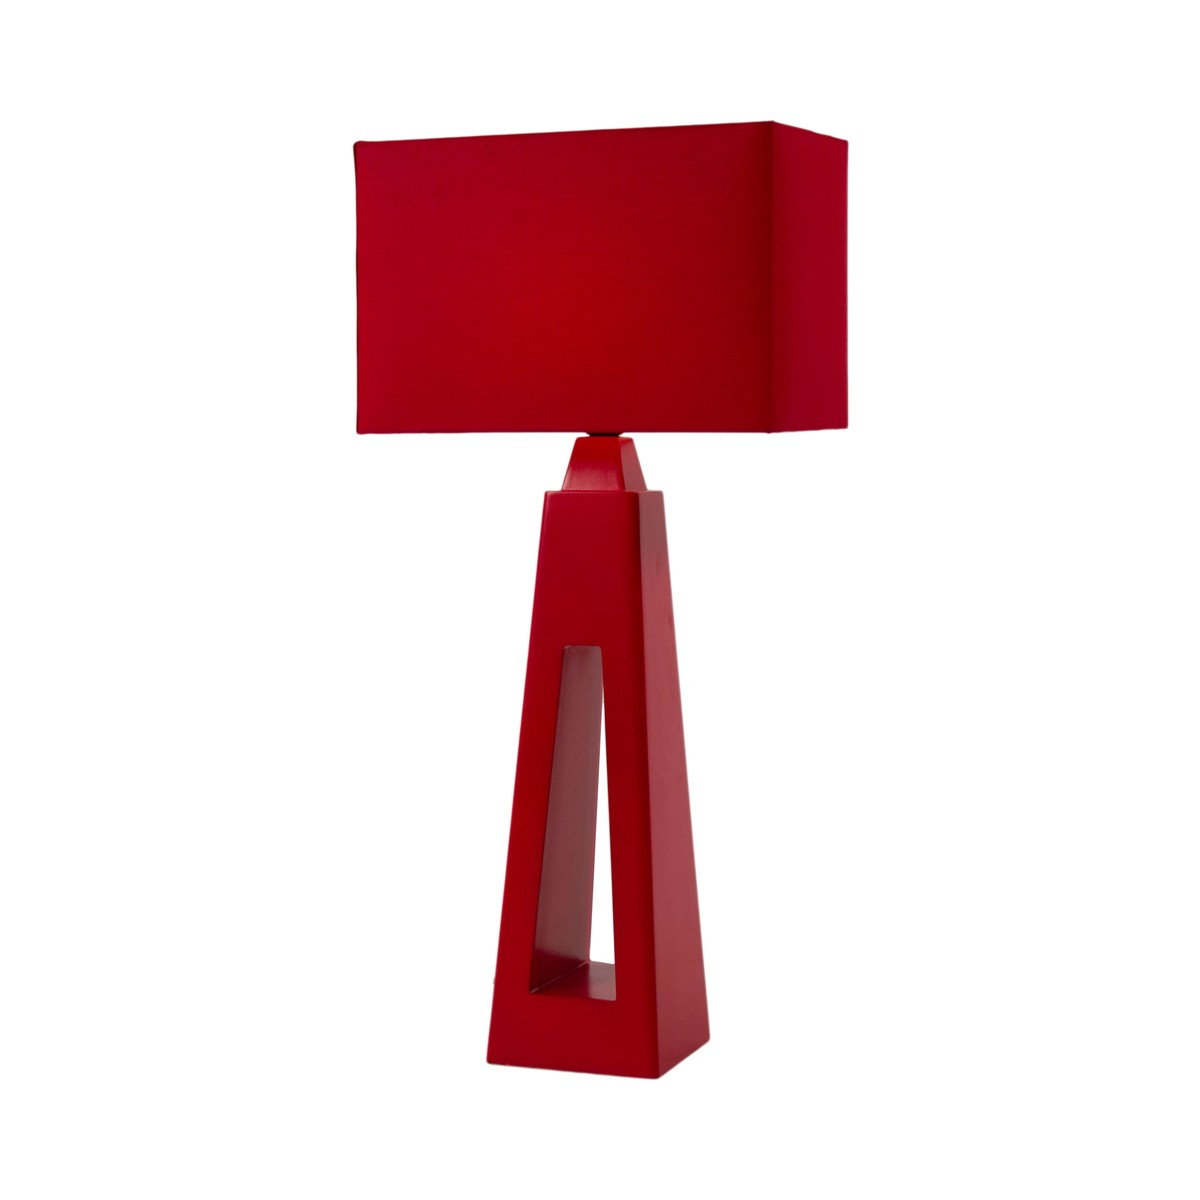 Intensity Table Lamp - Red Shangrilla